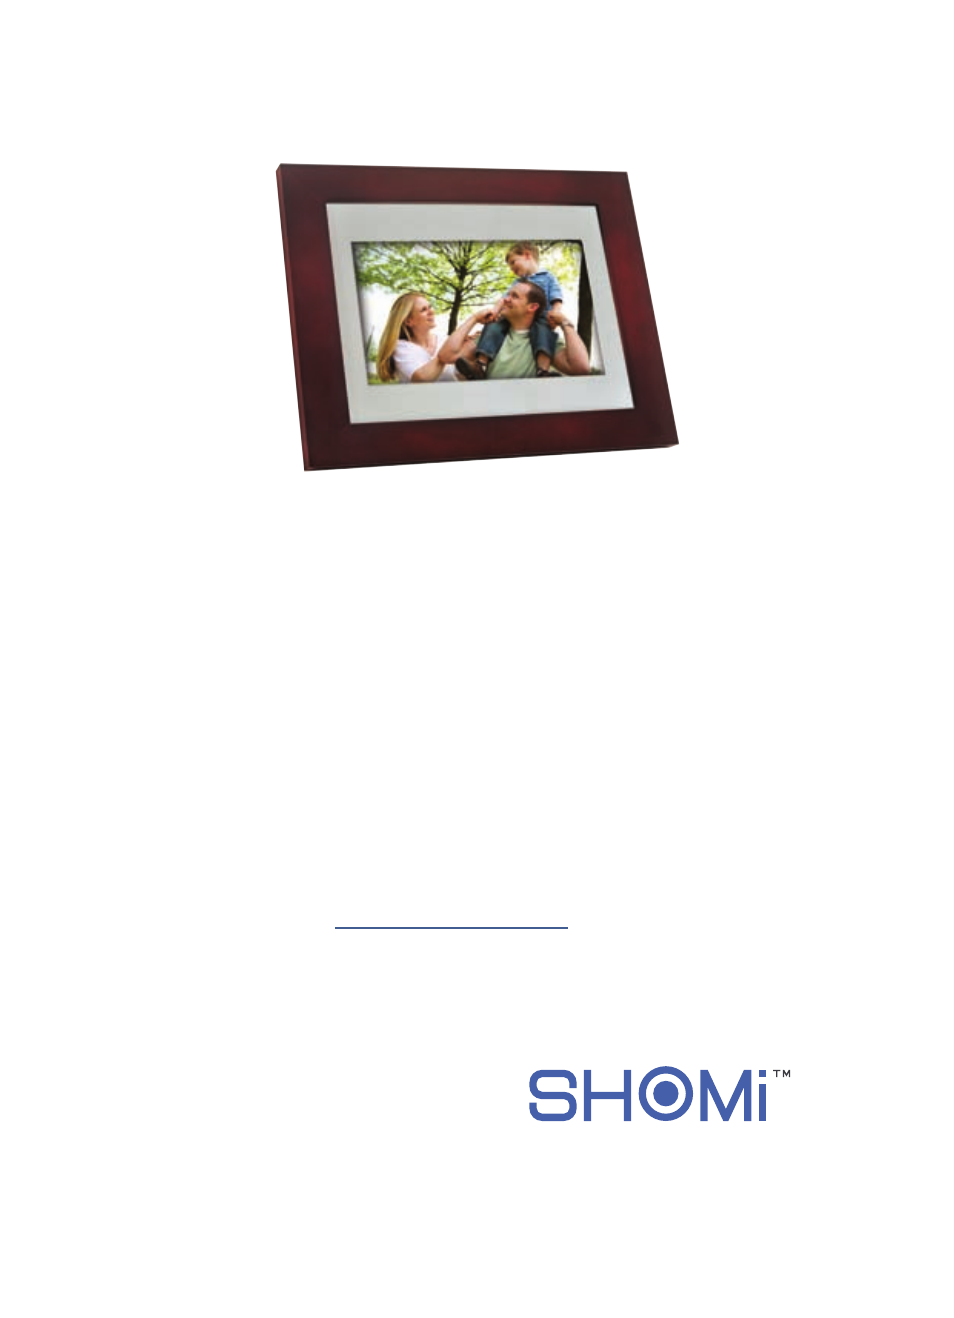 GiiNii SP-801P User Manual | 58 pages | Also for: SP-701P